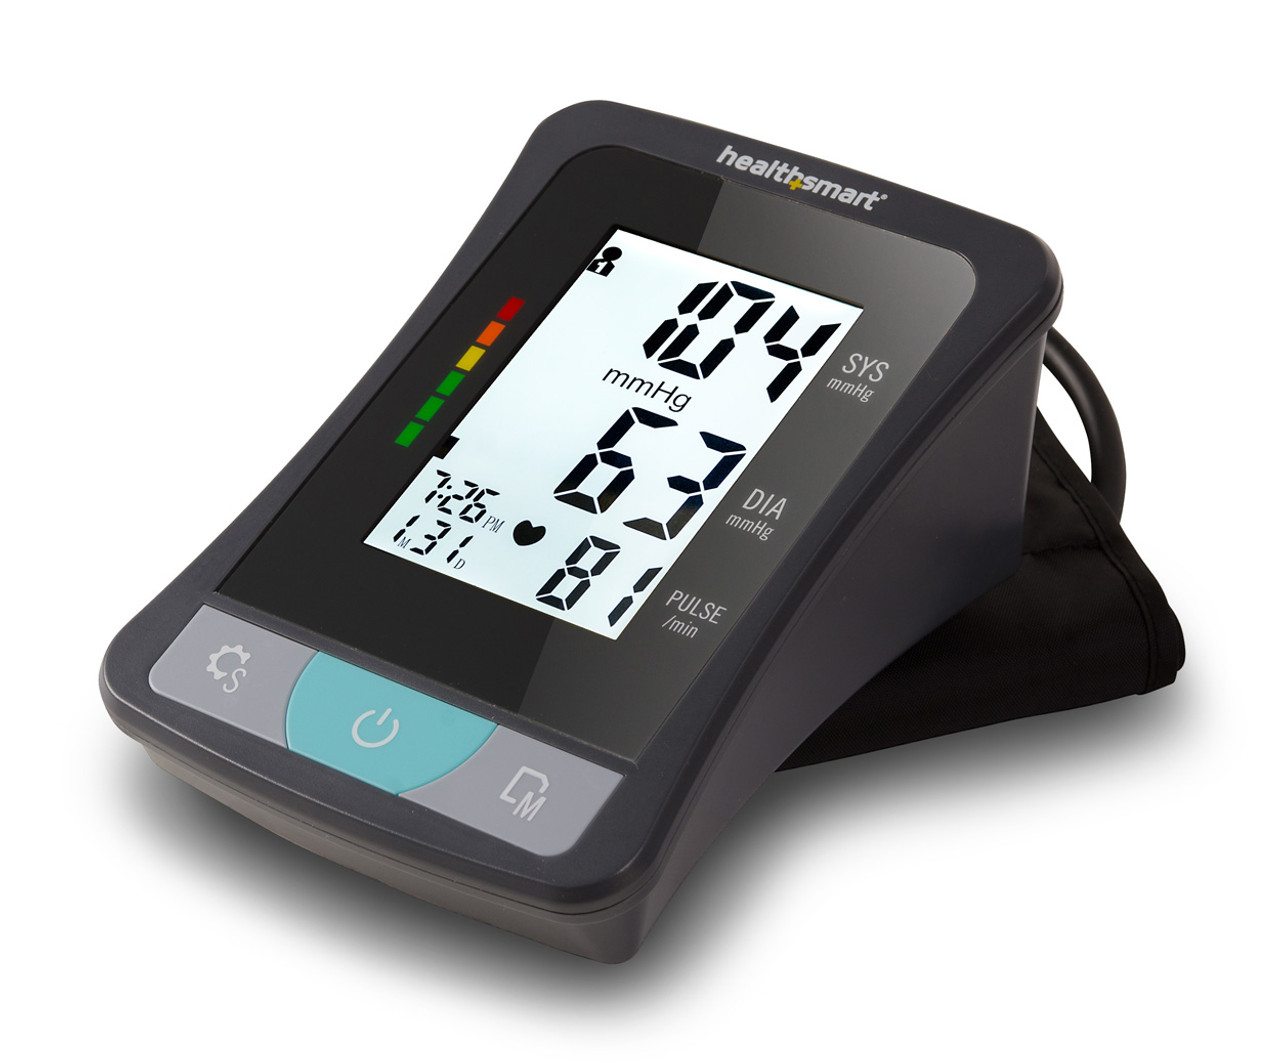 Talking Bilingual Premium Digital Blood Pressure Arm Monitor